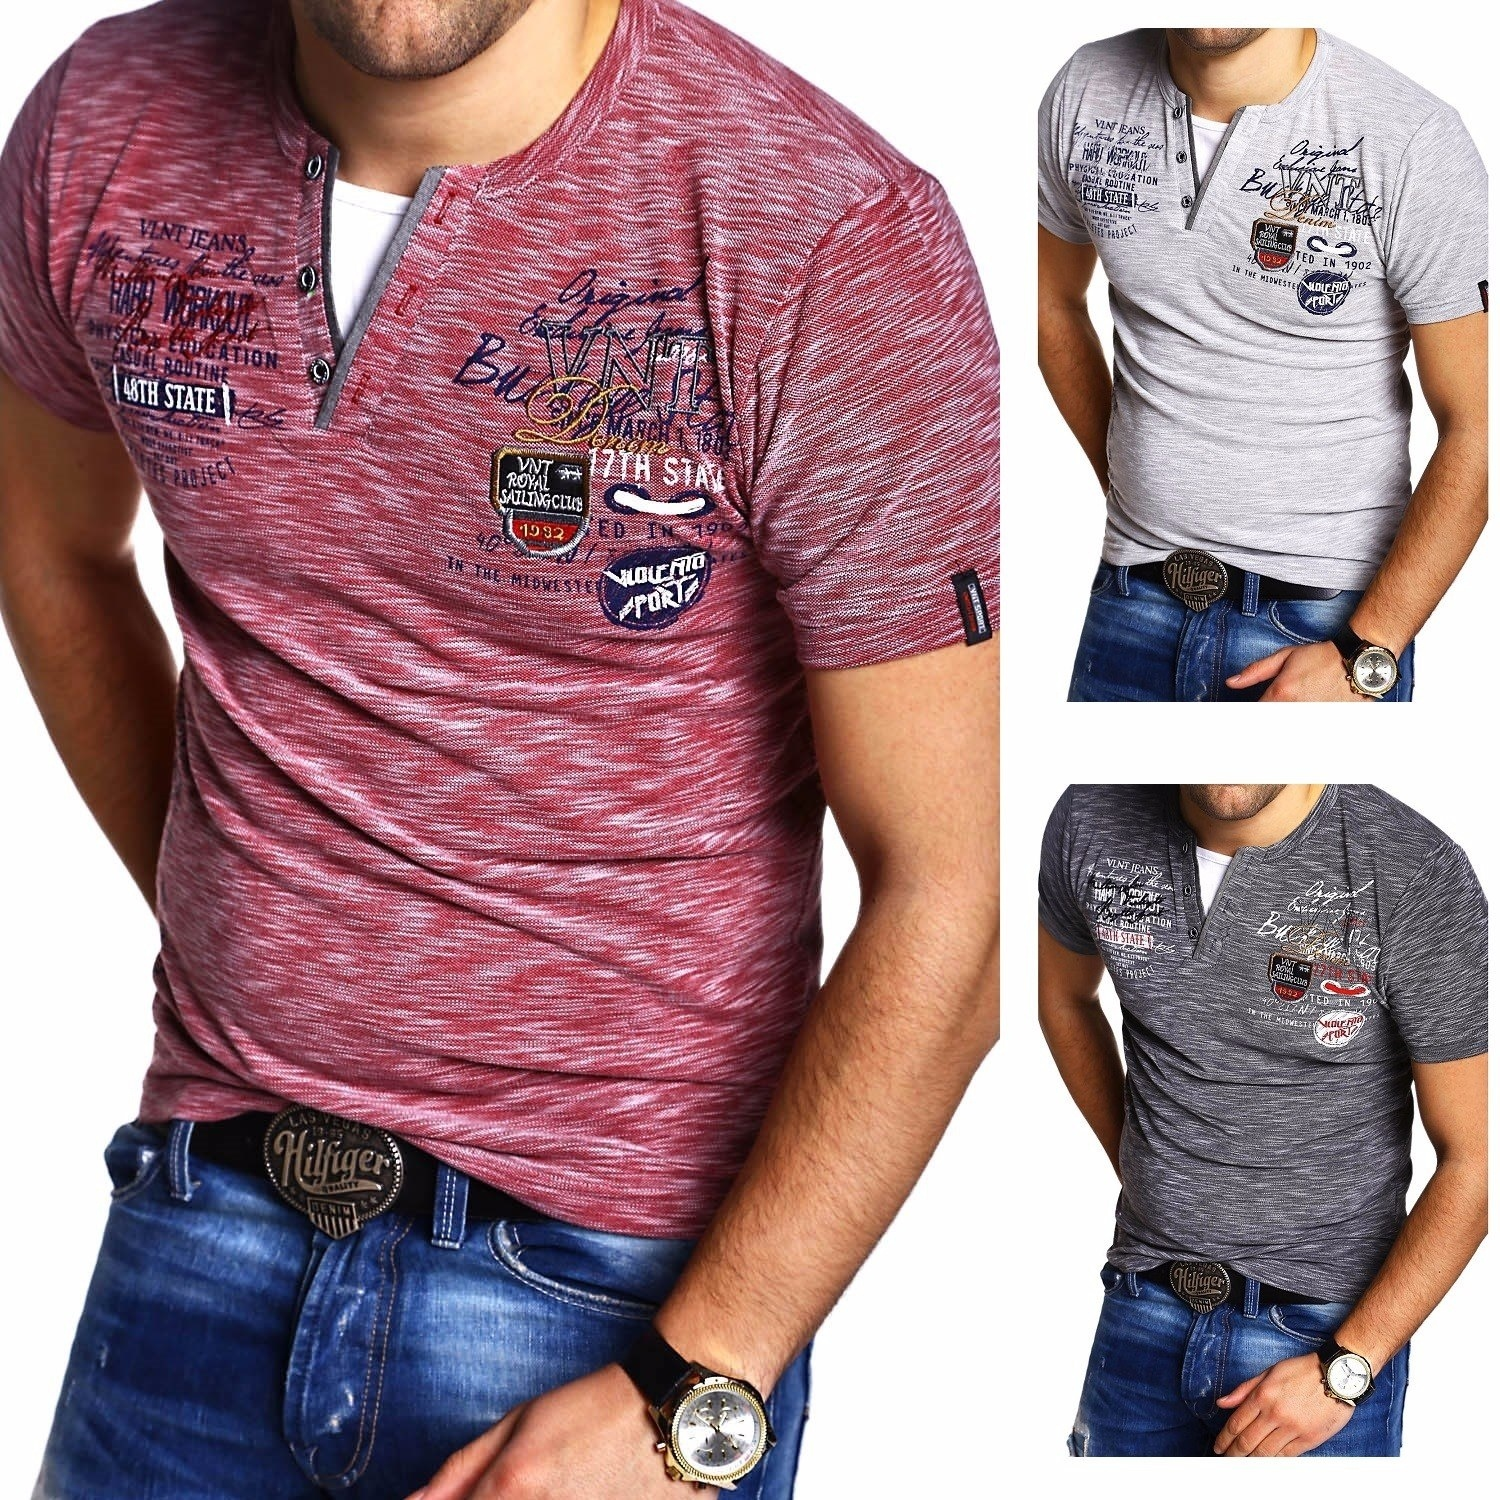 2020 New Men 4 Color Polo Shirt Slim Short-sleeved Shirt Polo Fashion Printed Cotton Casual Men's Polo Shirt Men Clothing S-3XL